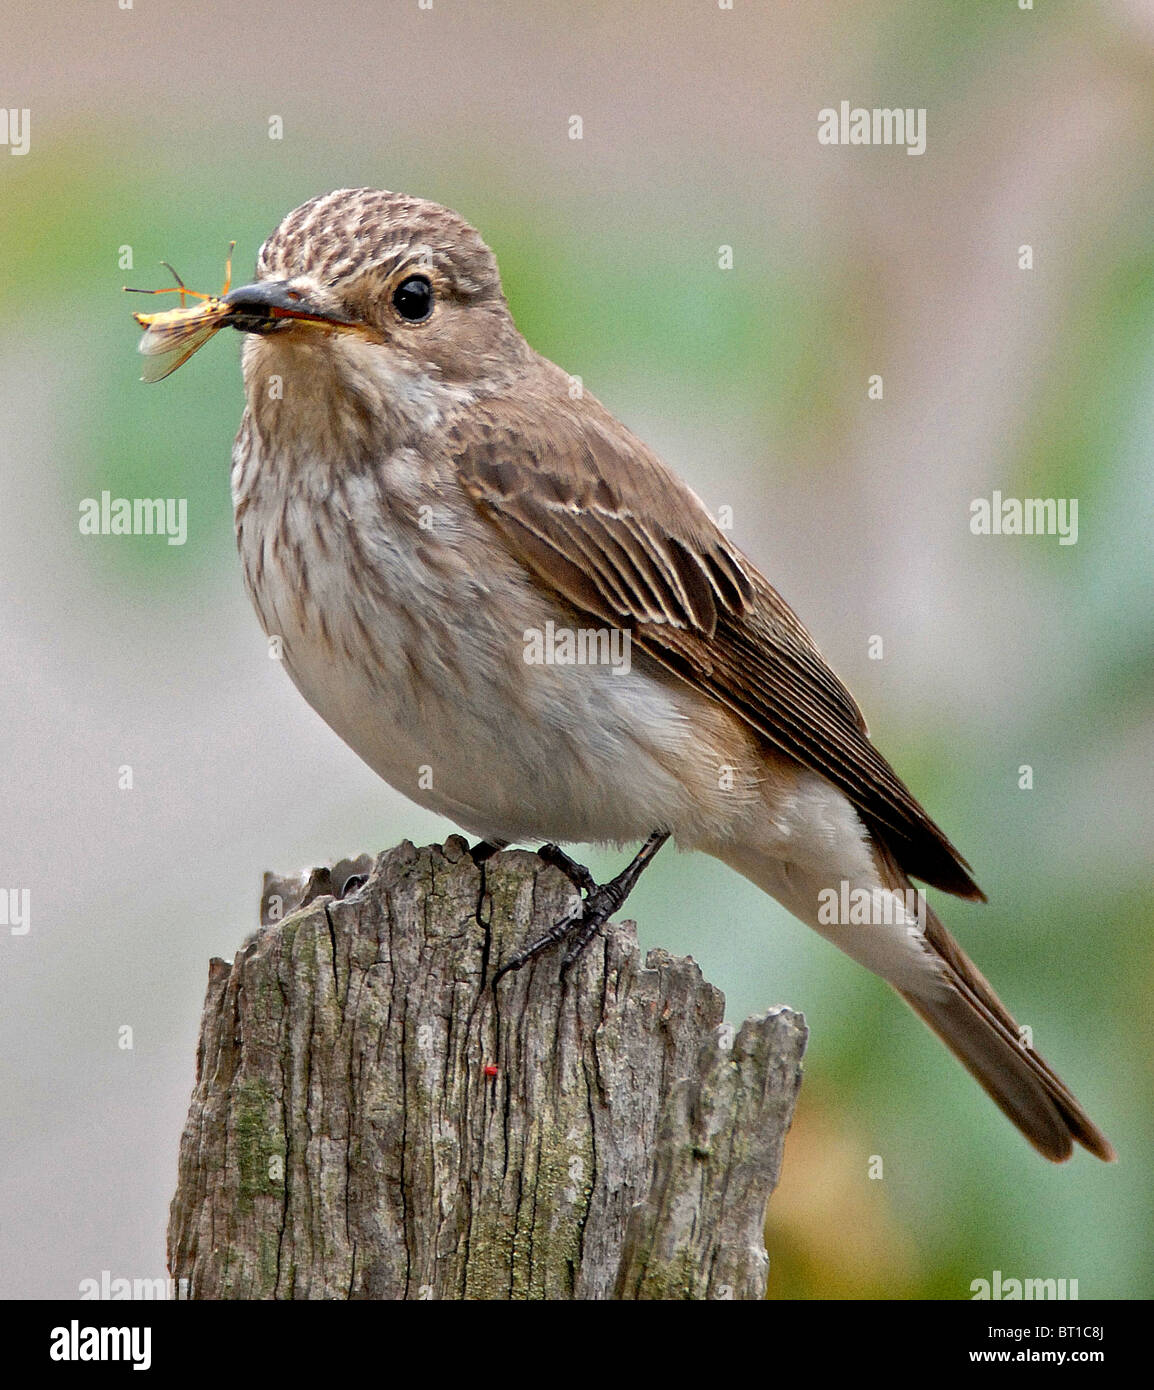 SPOTTED FLYCATCHER (Muscicapa striata) Recent dramatic decline in numbers has put the Spotted Flycatcher high on - Stock Image